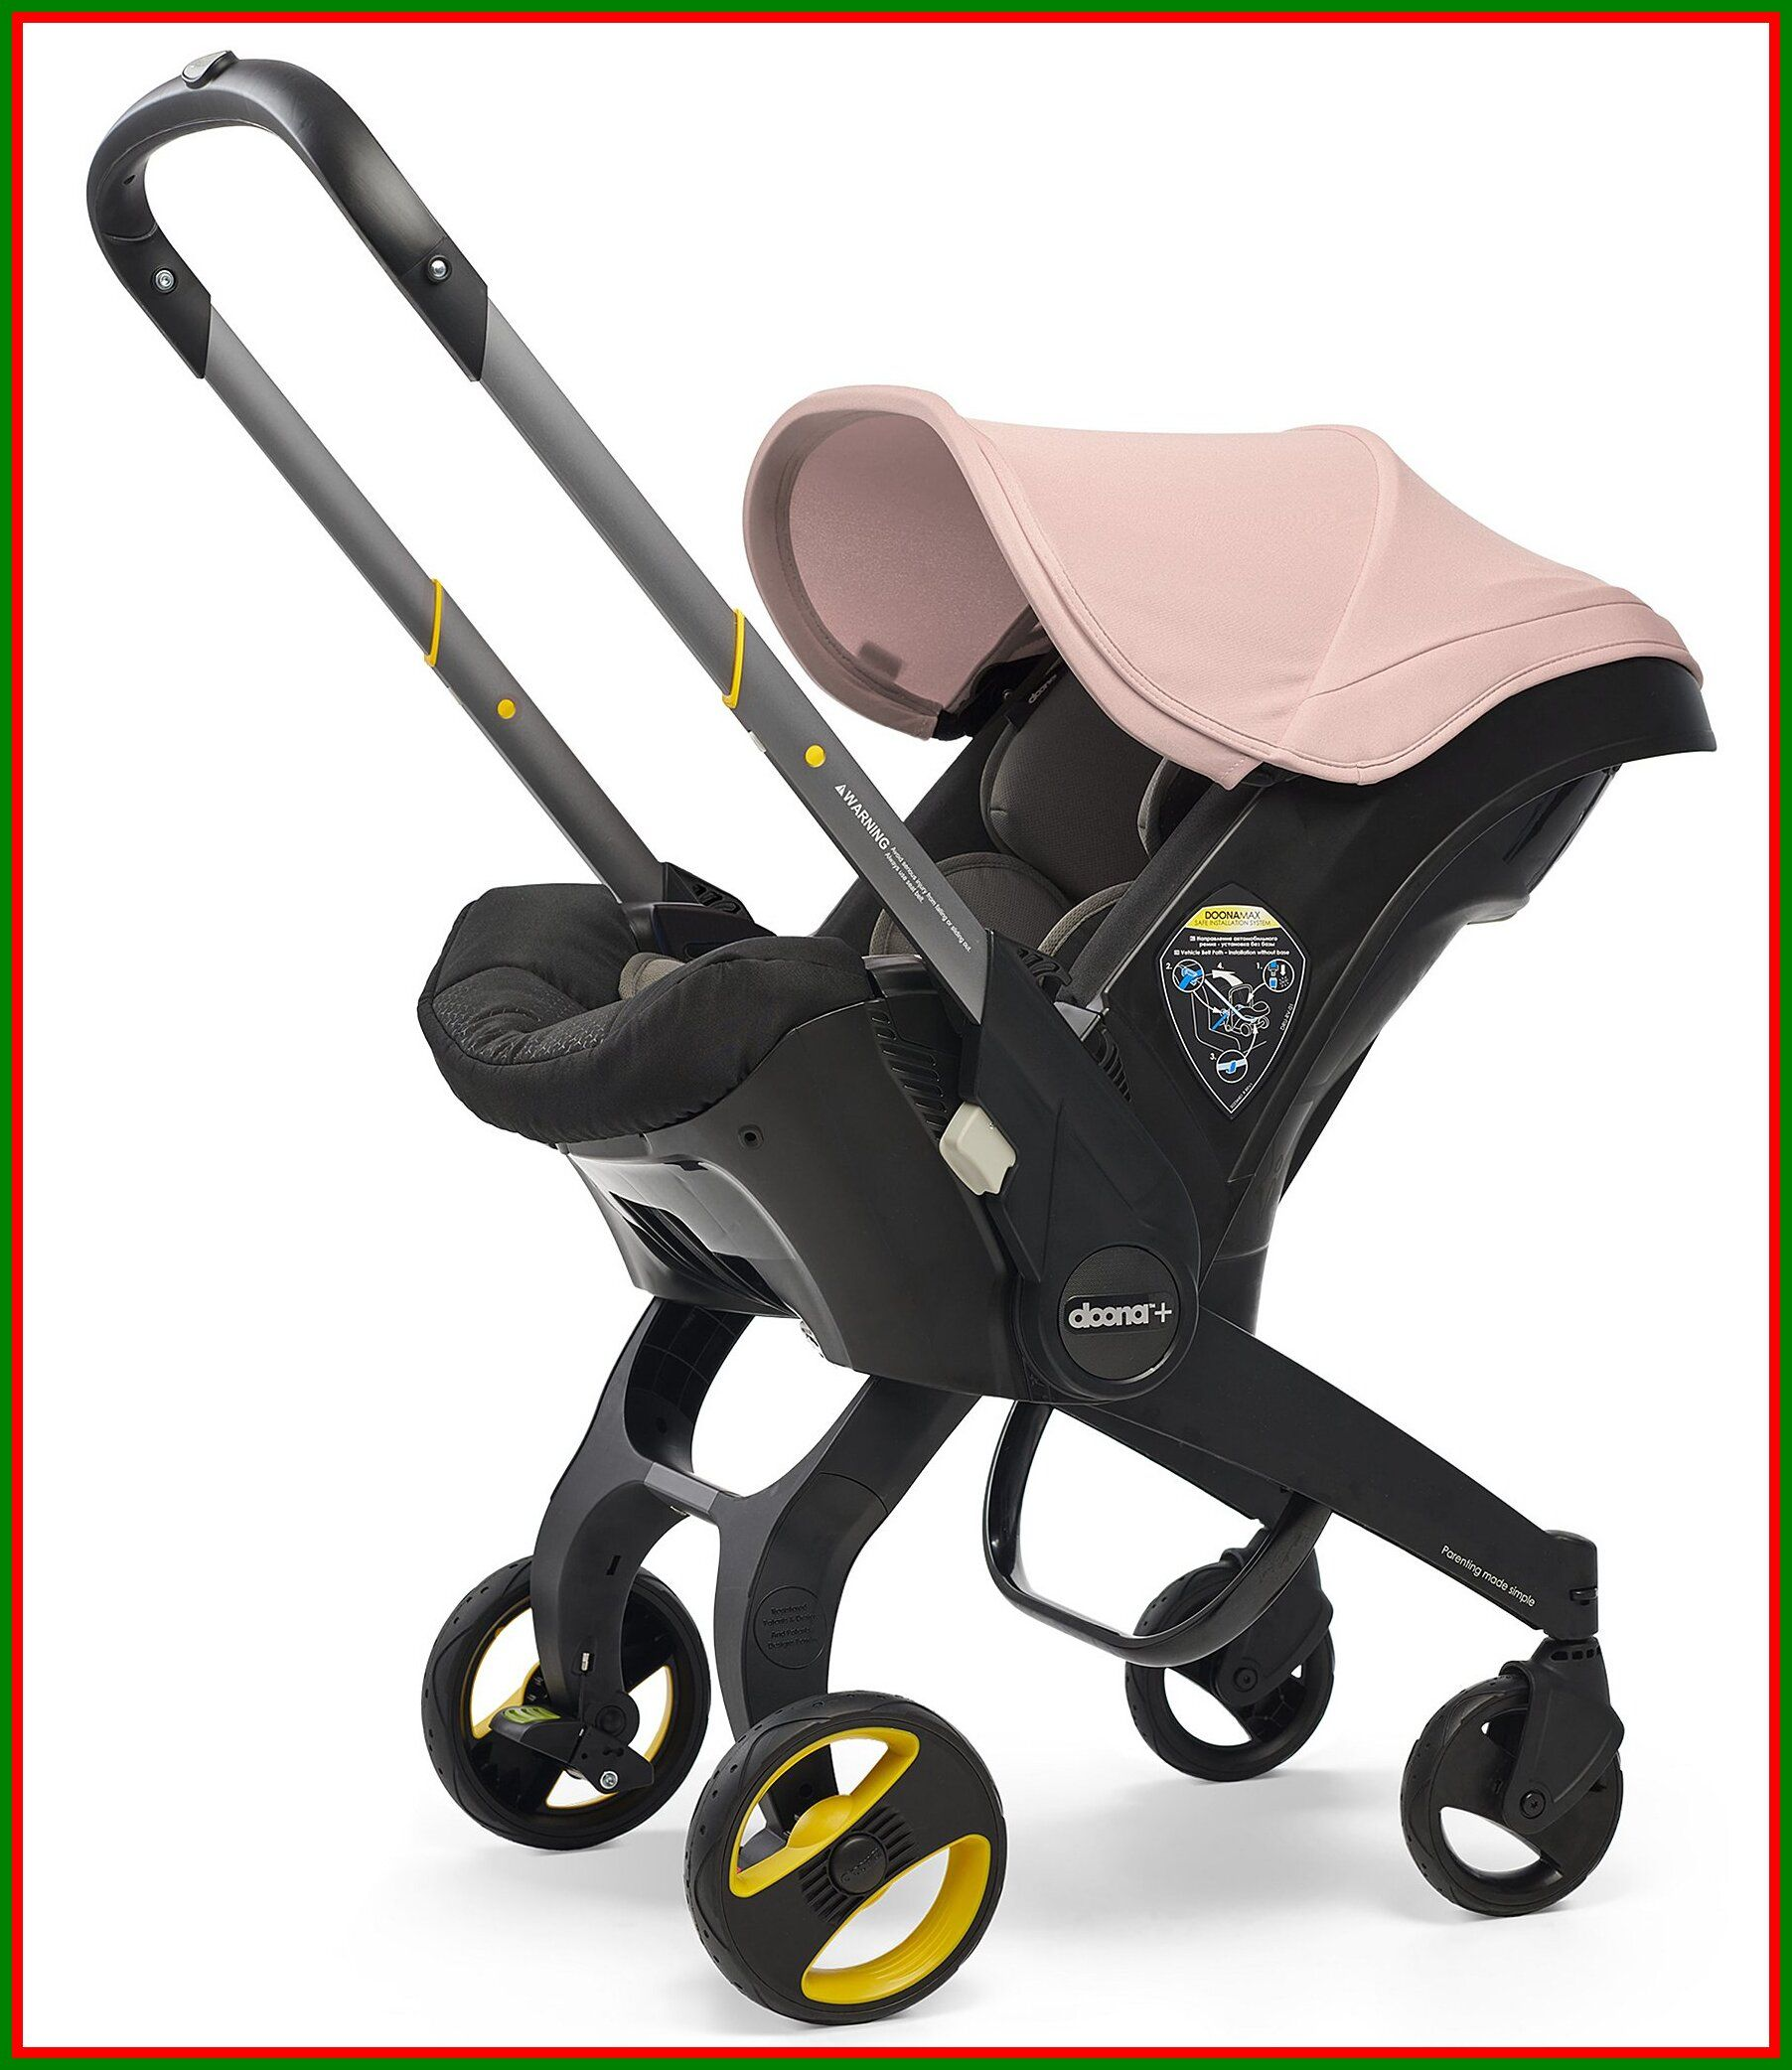 109 reference of convertible car seat stroller toddler in